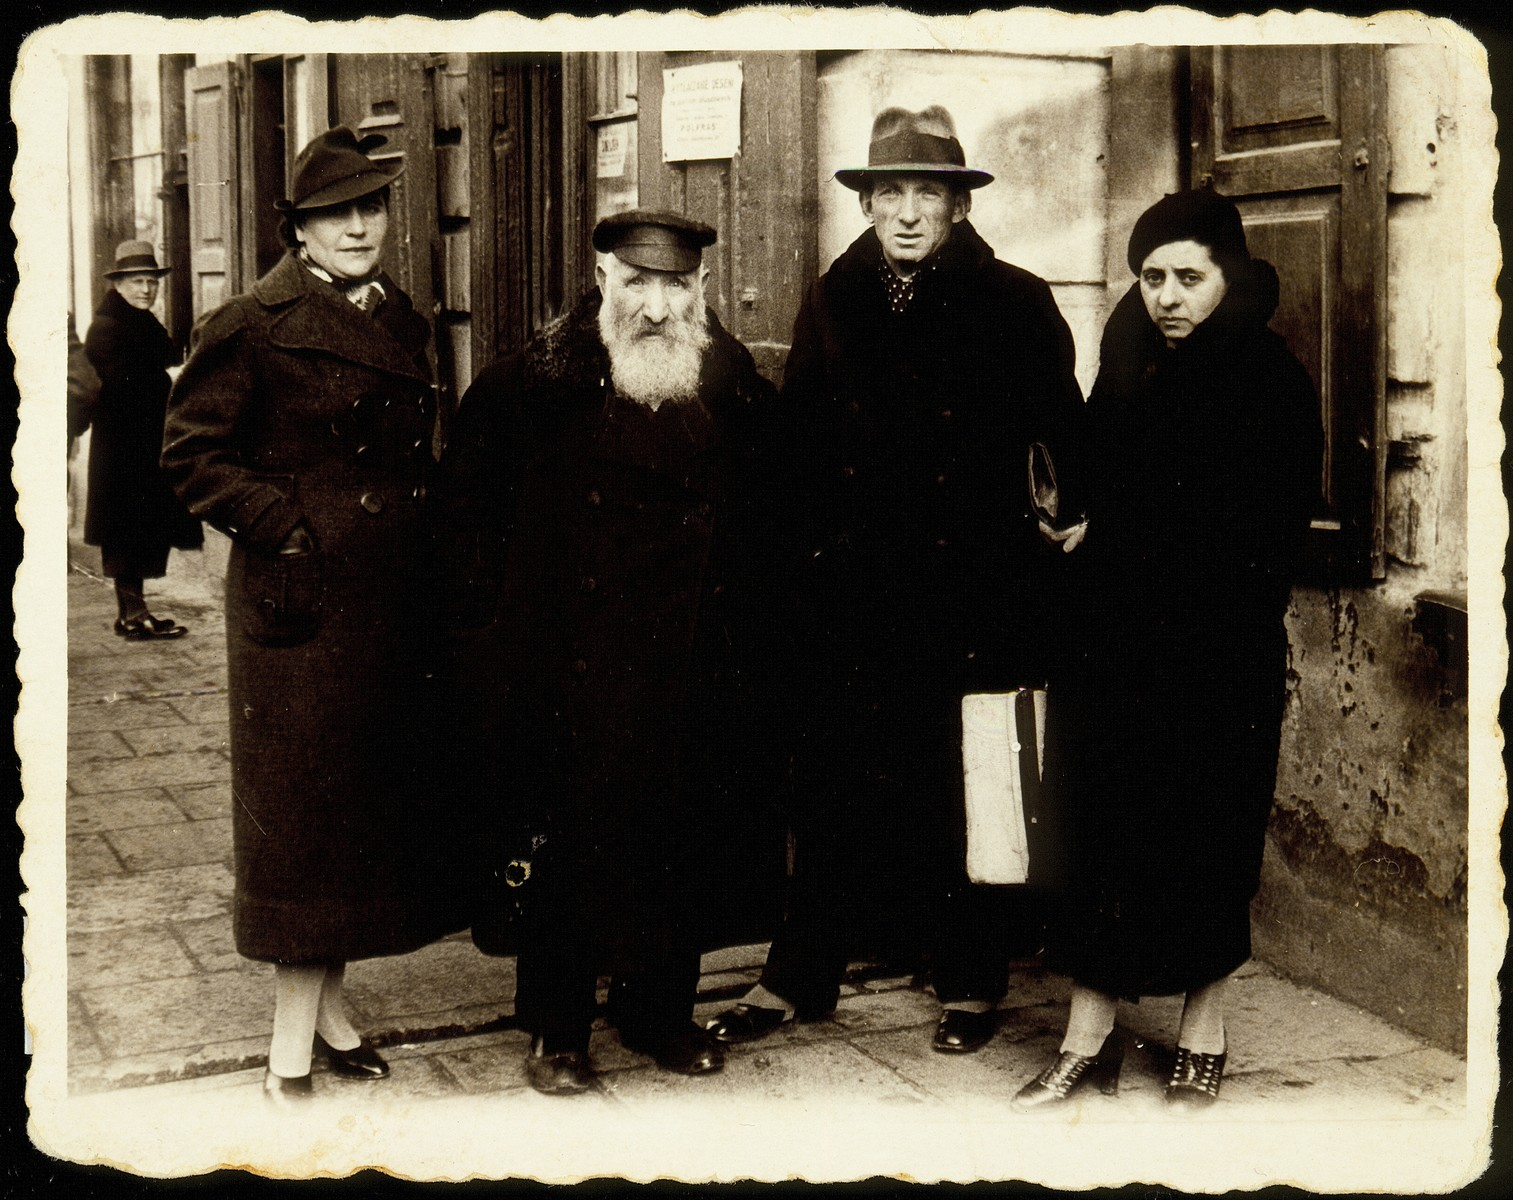 Members of the Kaganov family pose on a sidewalk in Grodno.    From right to left Judith (Yonah) Szyszenski Kaganov, her husband Szymen Kaganov, Reb Reuven Kaganov and Ida Kanichowski Kaganov.  Reb Reuven Kaganov died a natural death.  Ida Kaganov was murdered by Poles and her two children.  Szymen Kaganov and his wife Judith (Yonah), and son Yaakov immigrated to Palestine.